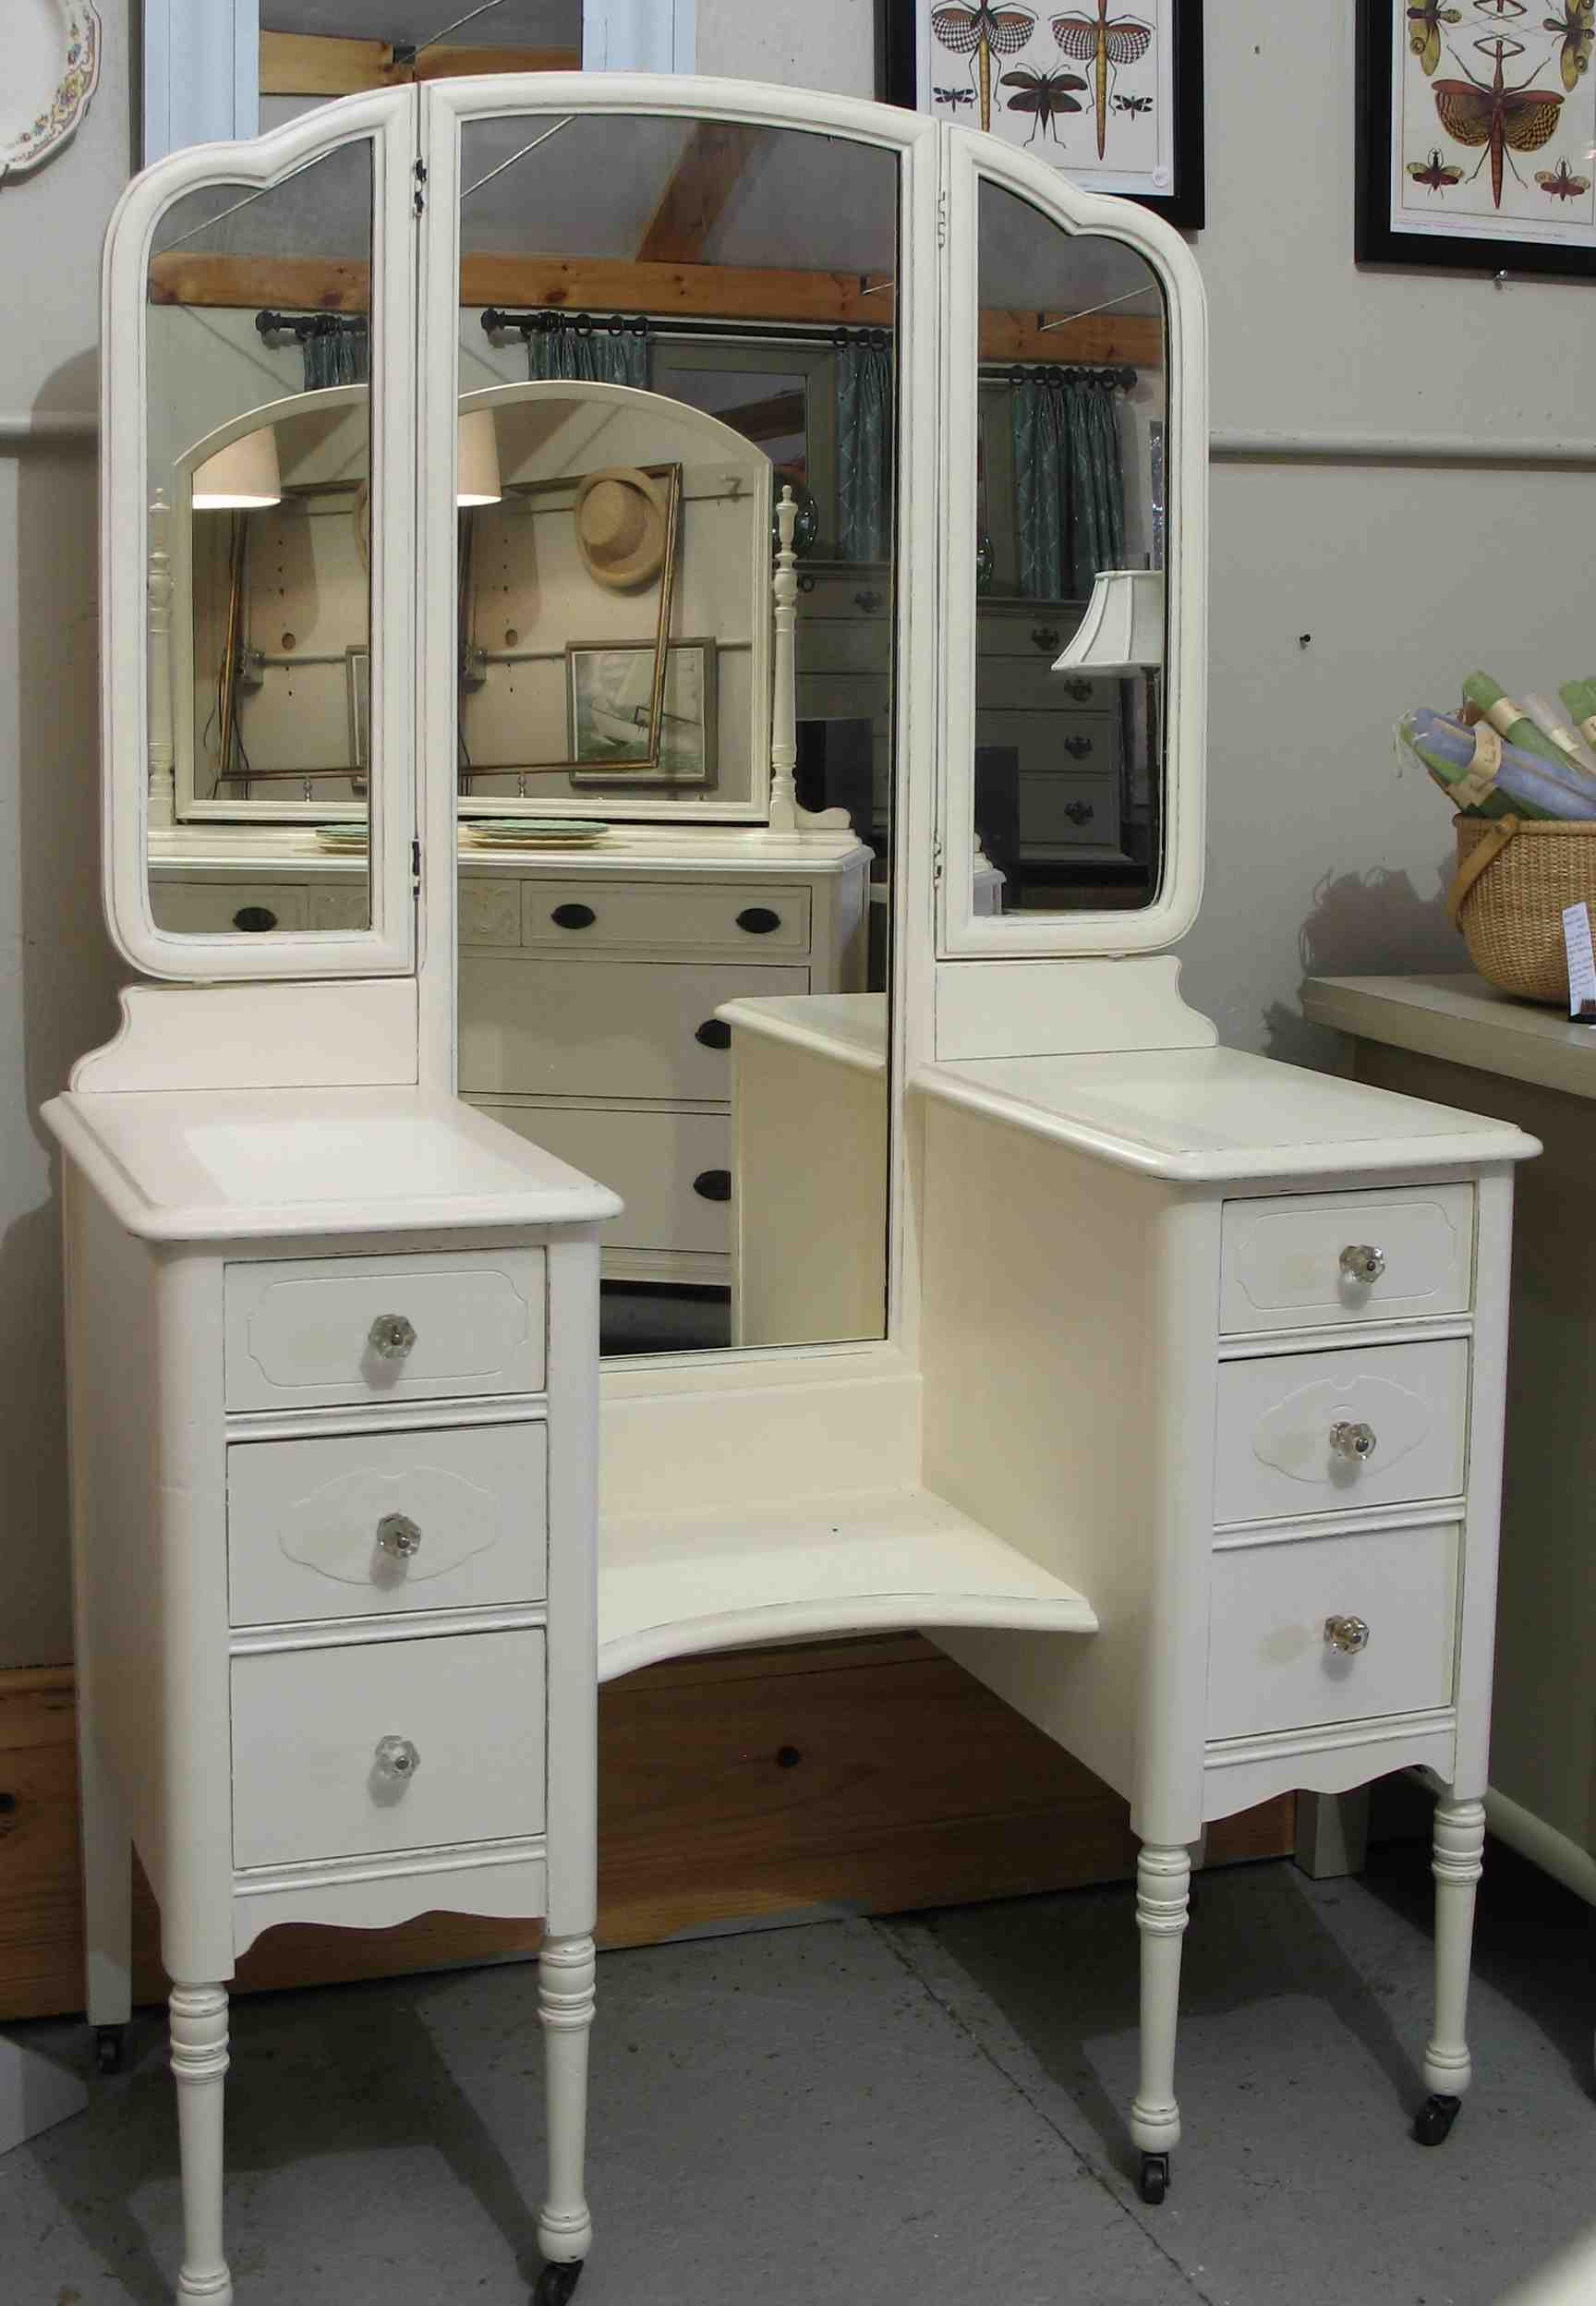 Antique White Painted Mahogany Vanity Table With Drawers Cabinet inside Mirrored Vanity Desk - Bedroom Design Ideas